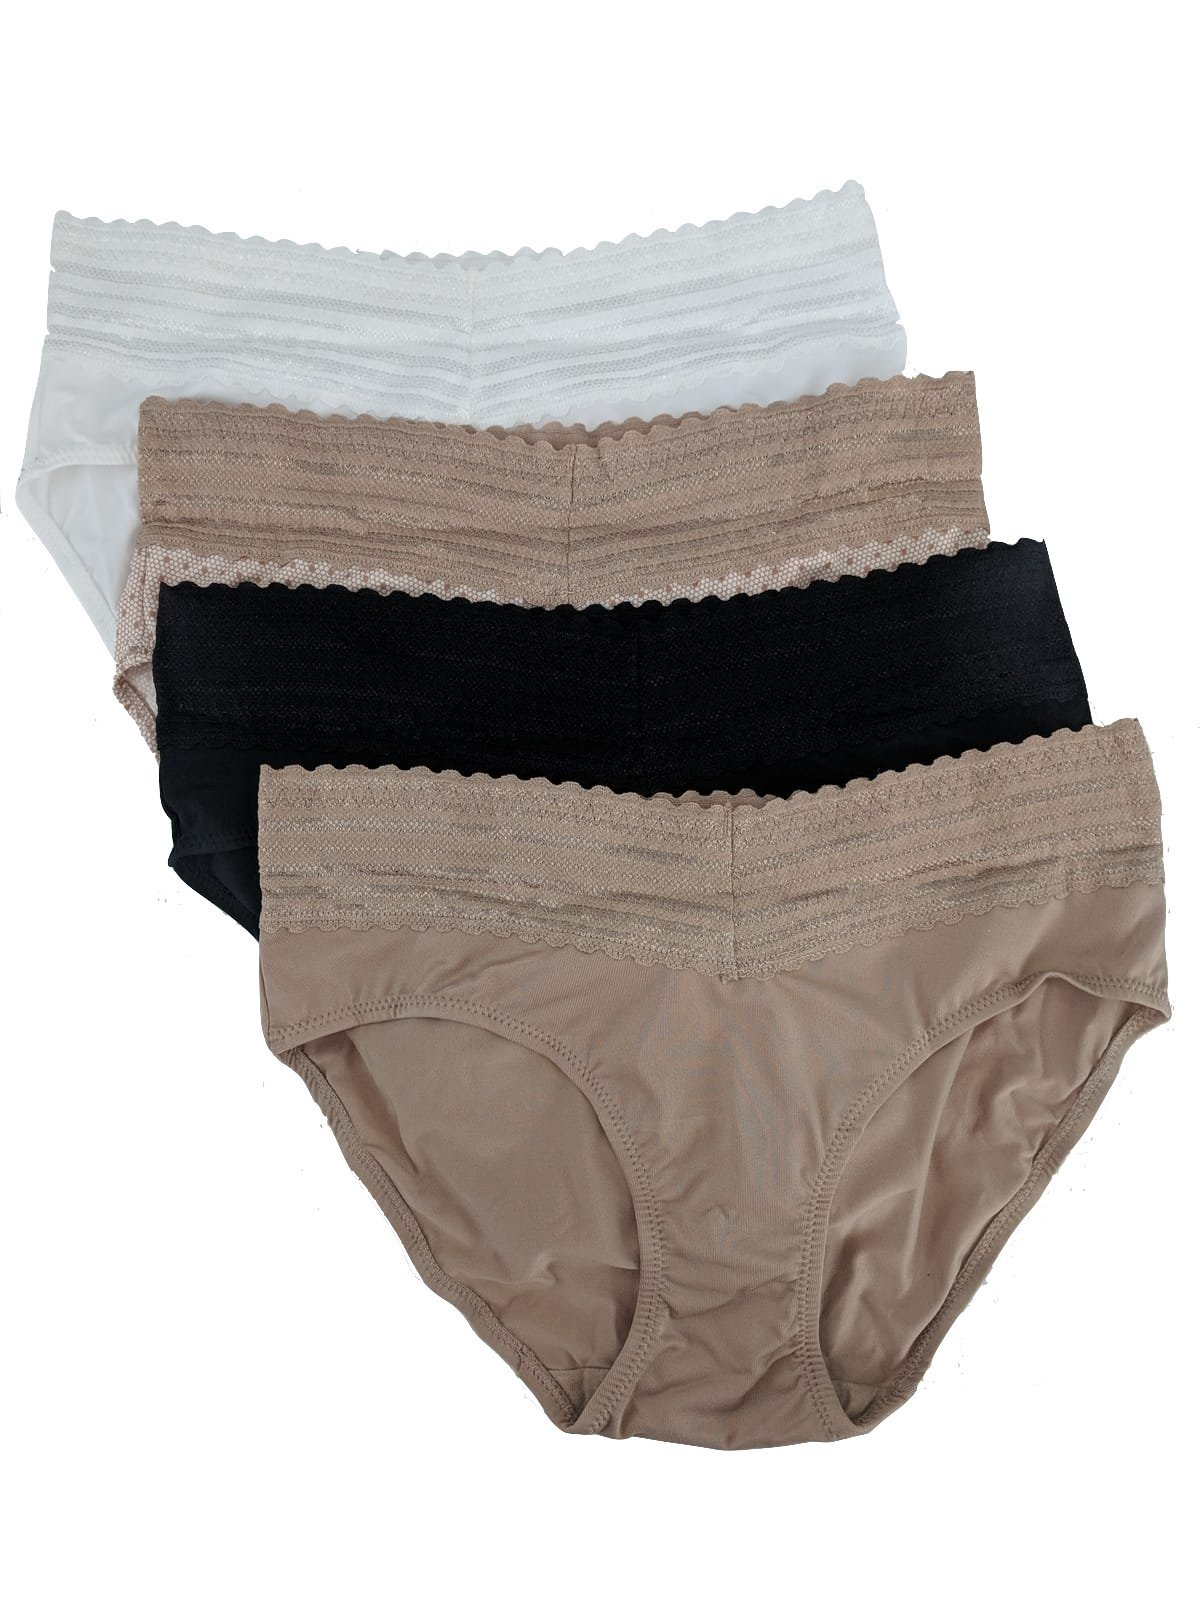 Warner's Womens No Pinches No Problems Hipster Panty 4-Pack, Medium, White/Beige Hive Pattern/Black/Beige